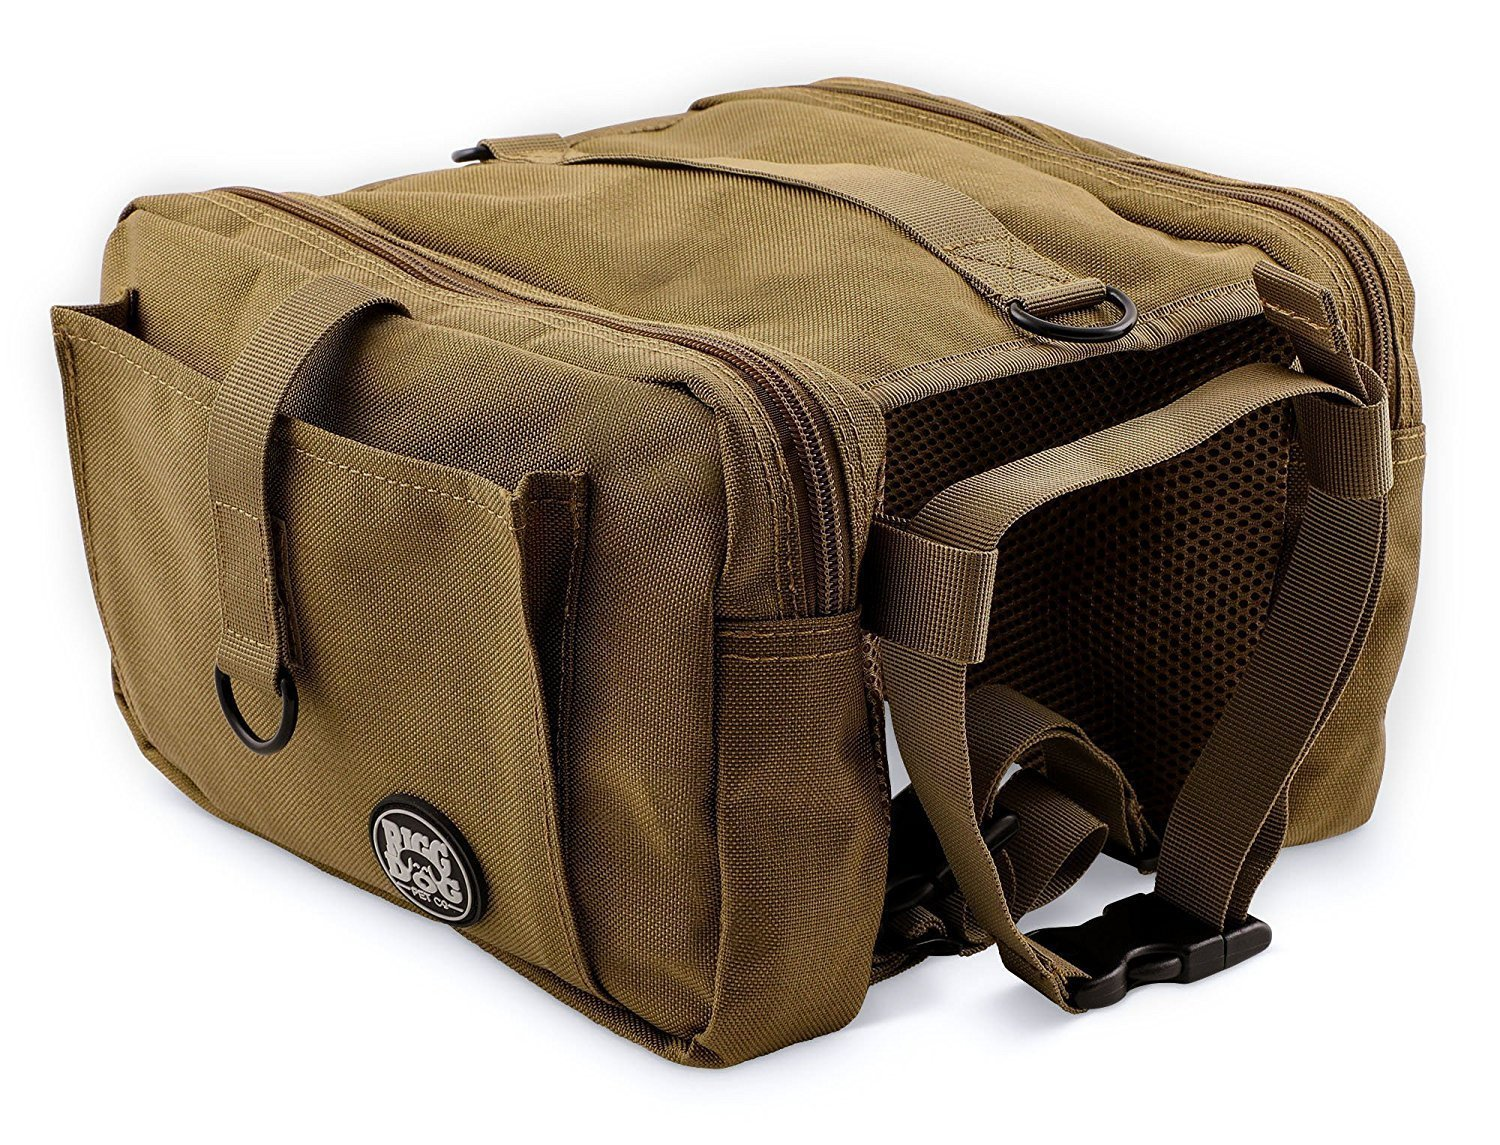 RIGG DOG Oxford Canvas Dog Saddle Bag Harness Backpack - Perfect Dog Hiking Pack for Treks, Camping and Hound Travel | Durable, Lightweight, Saddlebags for Medium and Large Dogs (Black)